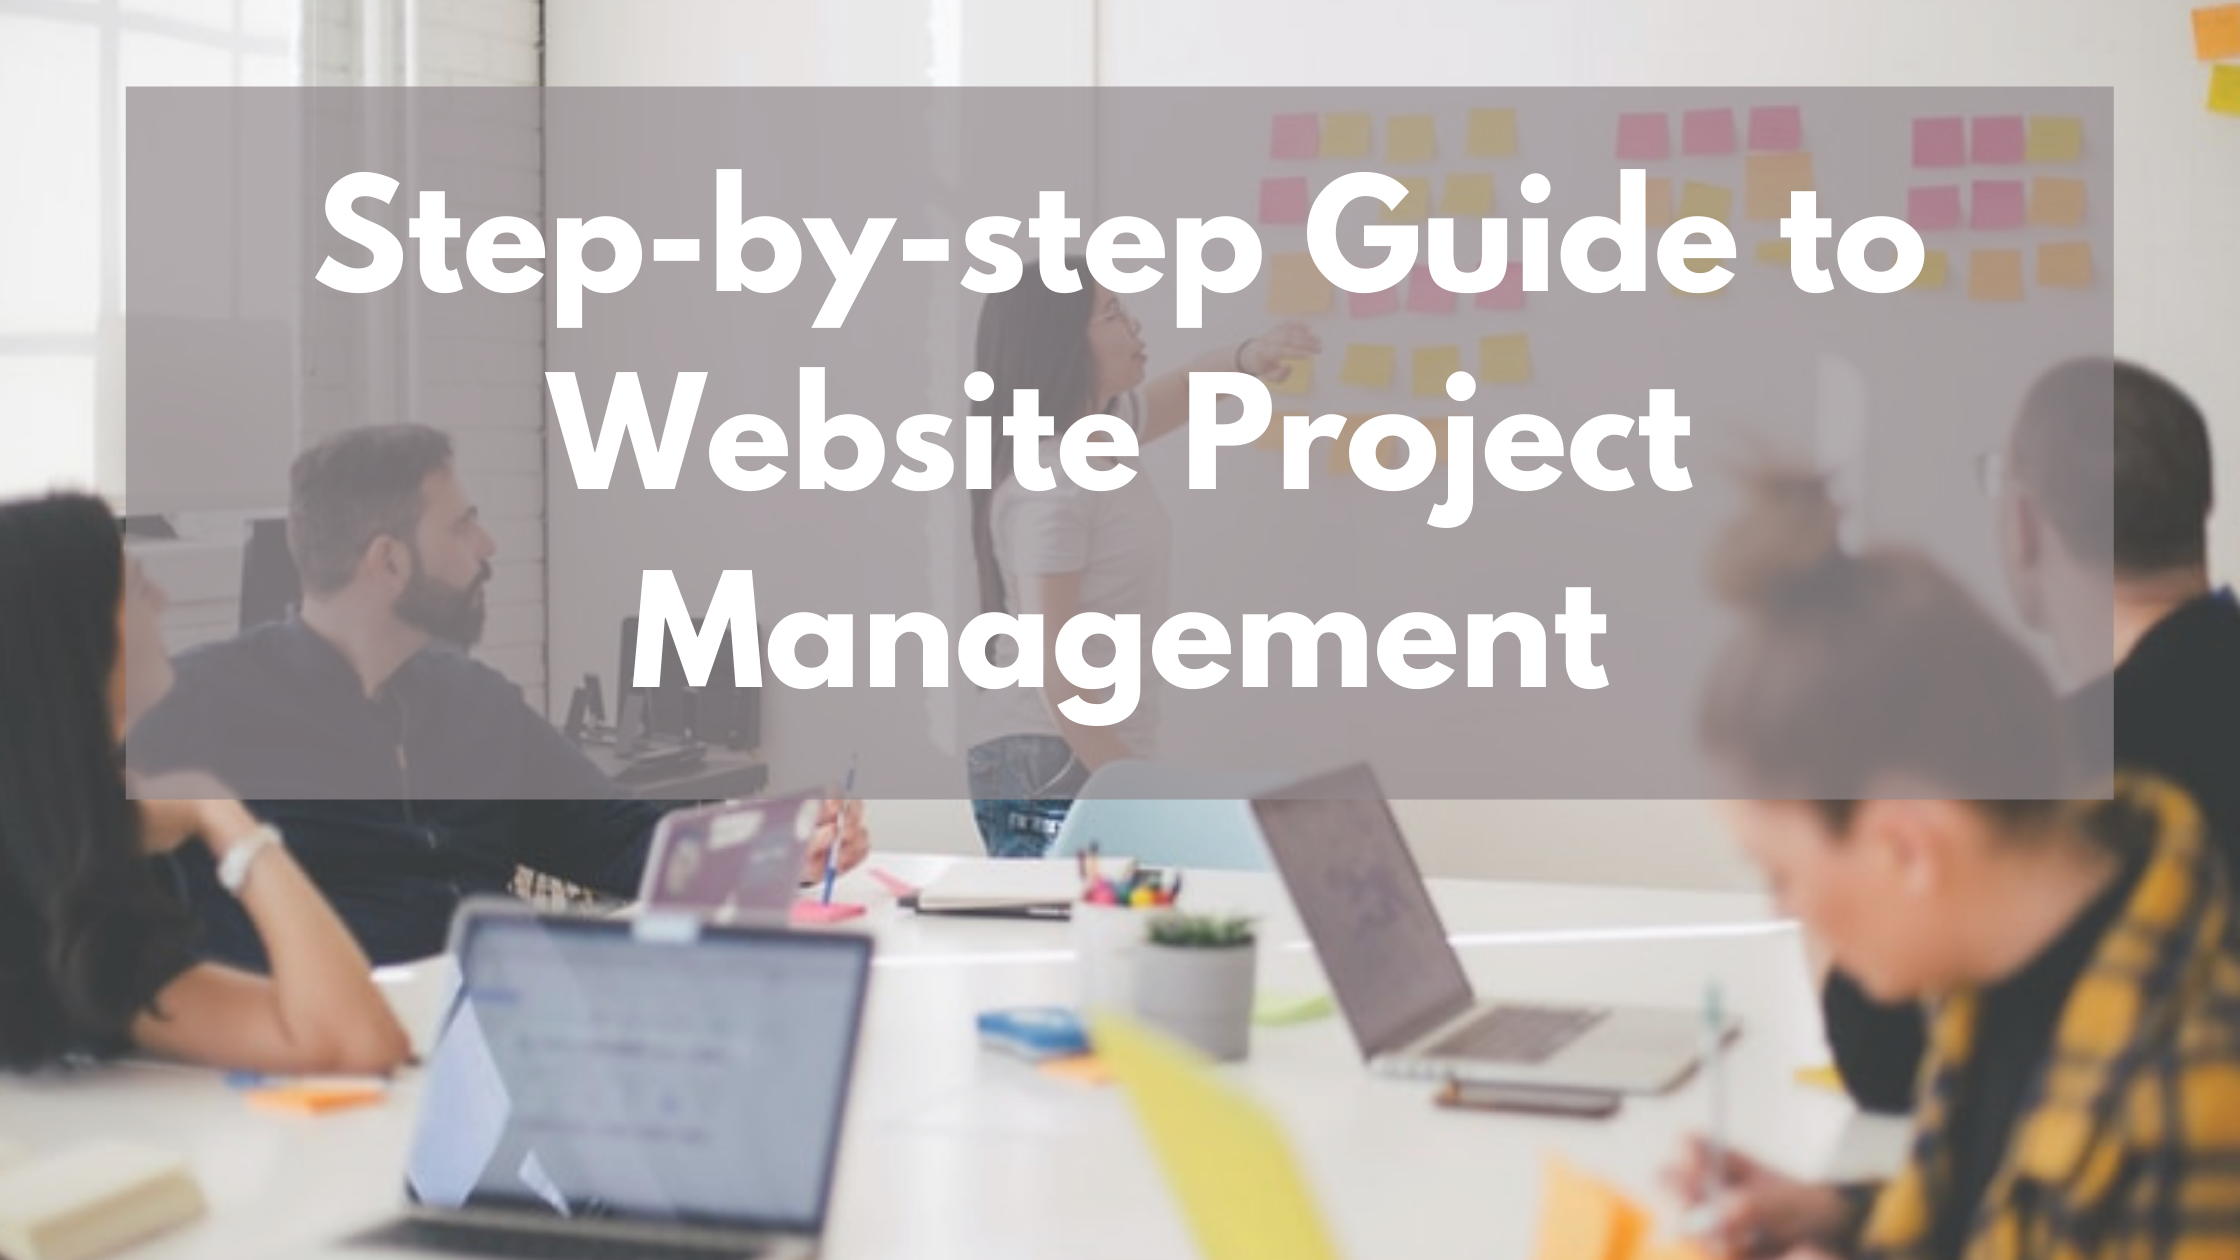 Step-by-step Guide to Website Project Management